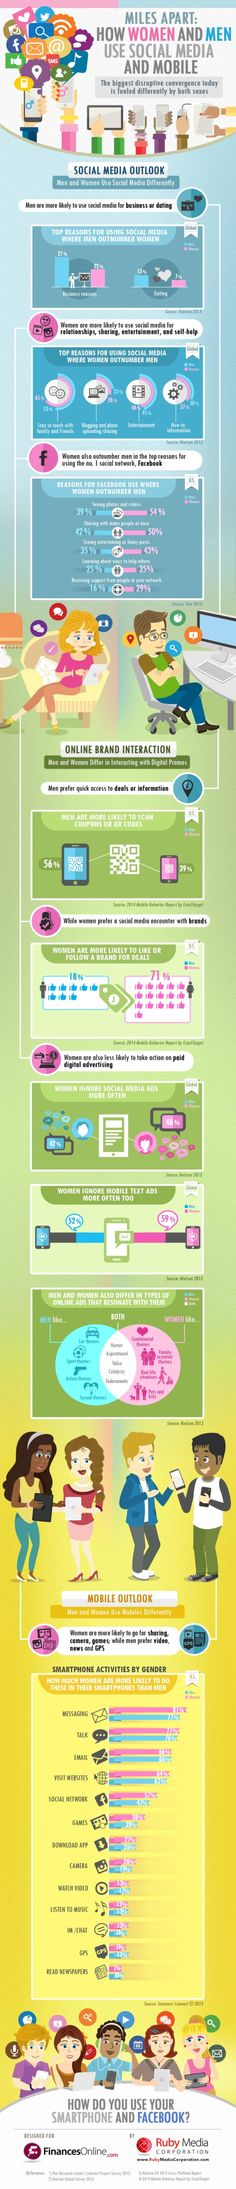 How Men And Women Stack Up On Social Media (Infographic)